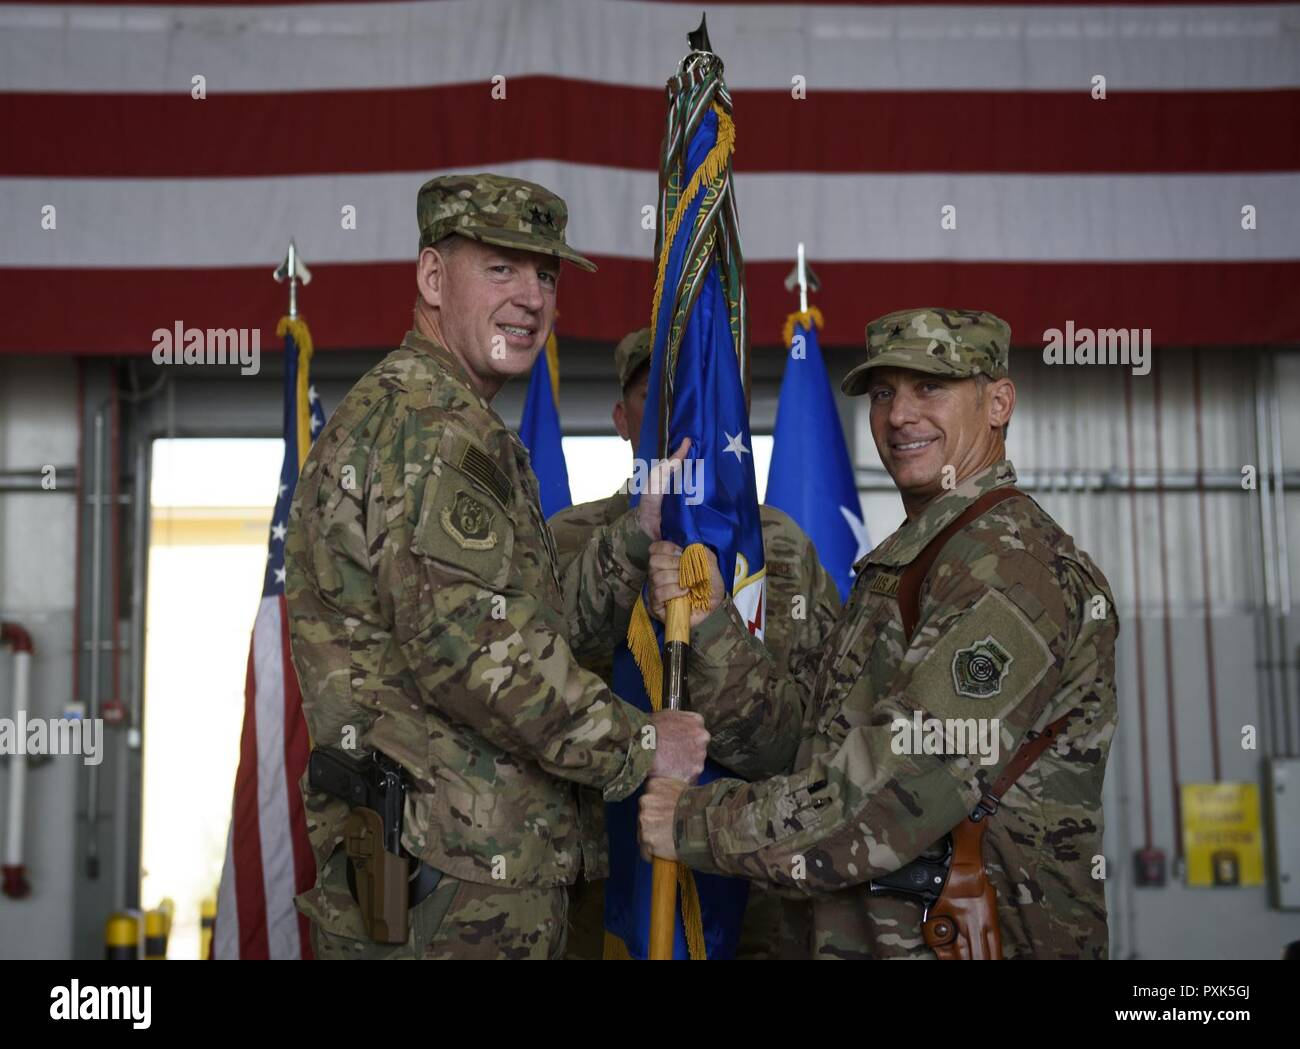 Brig. Gen. Craig Baker, the incoming 455th Air Expeditionary Wing commander, receives the 455th AEW guidon from Maj. Gen. James Hecker, the 9th Air and Space Expeditionary Task Force-Afghanistan commander, which officially grants him command of the 455th AEW during a change of command ceremony at Bagram Airfield, Afghanistan, June 3, 2017. Baker is a command pilot with more than 2,600 flying hours and has commanded at the Squadron and Wing level. Stock Photo